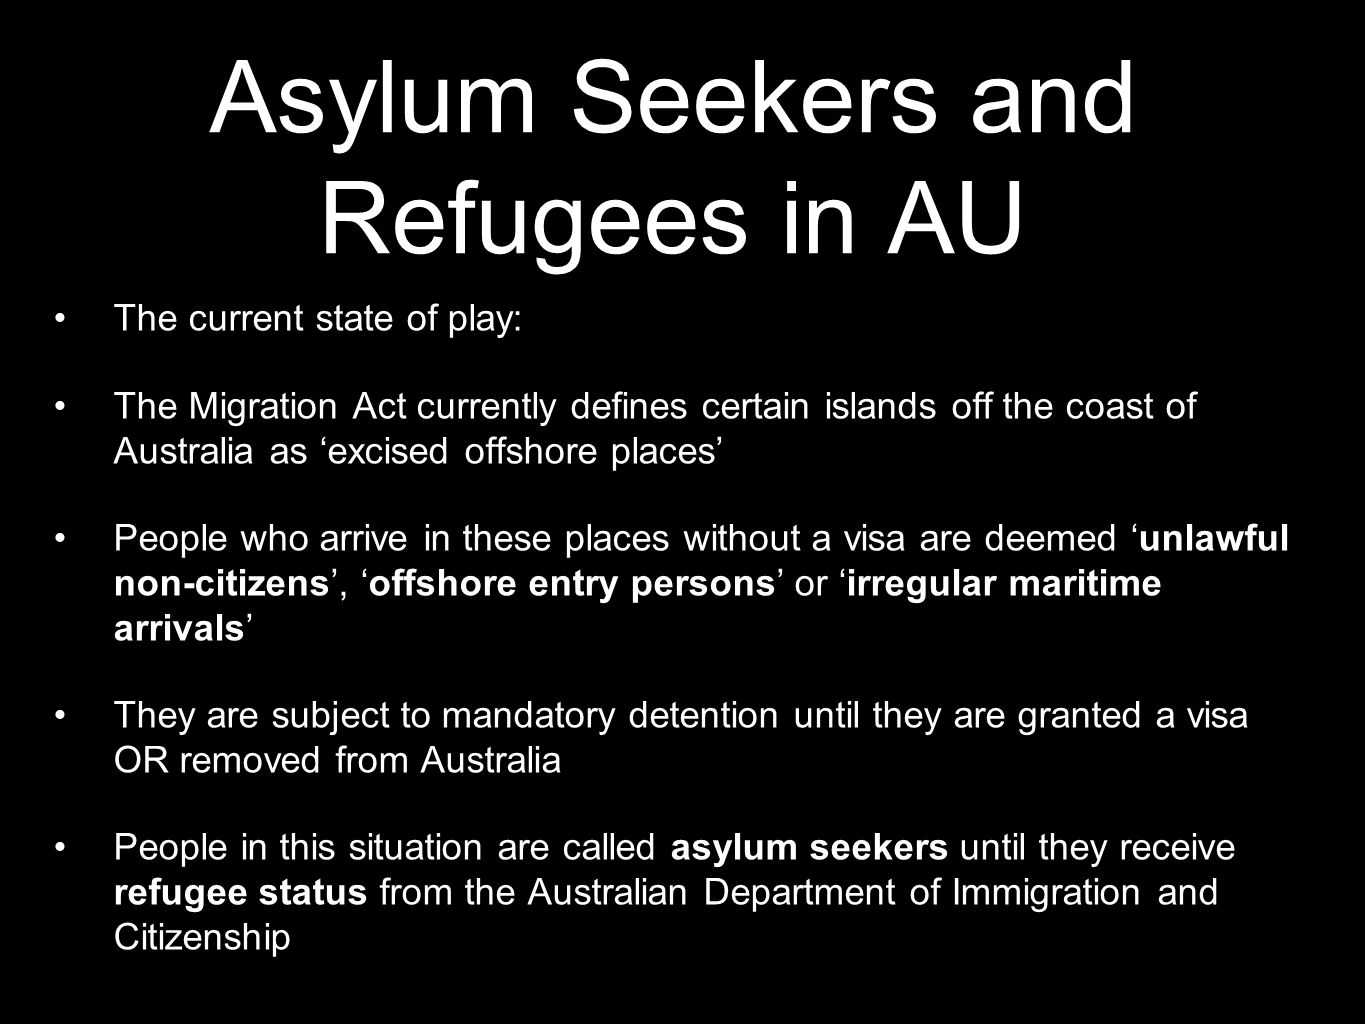 Asylum Seekers and Refugees in AU